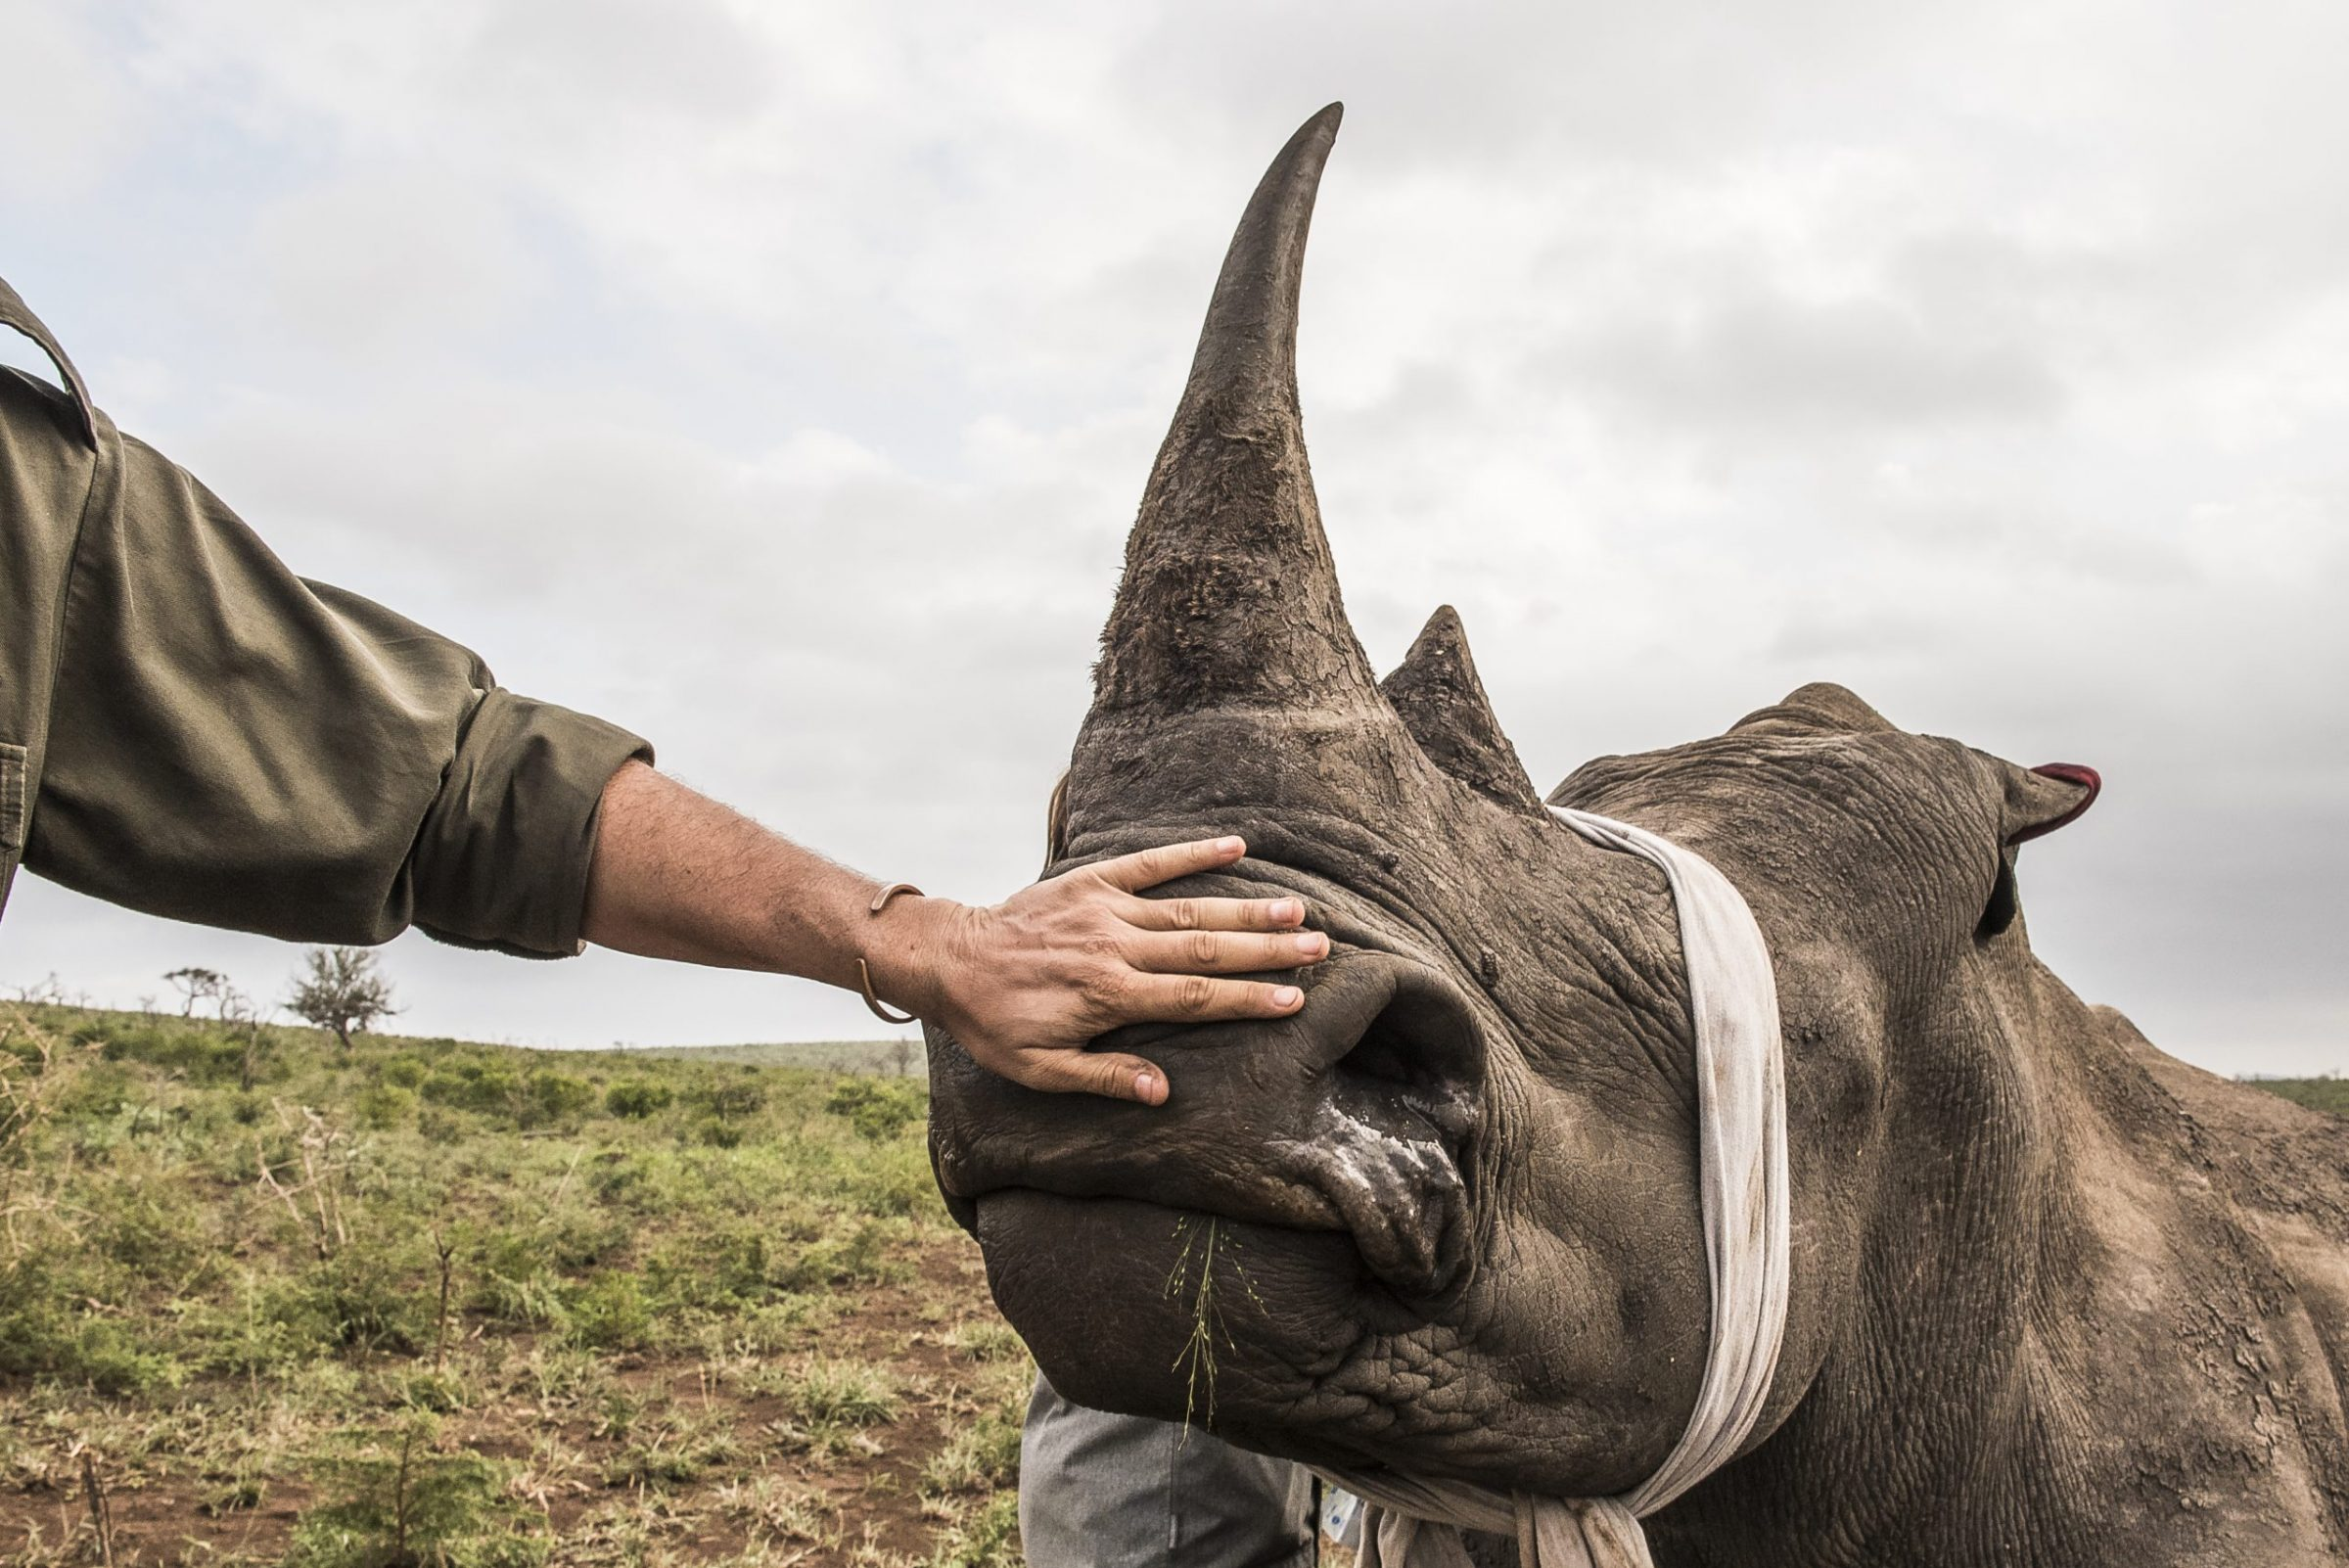 Biologists prepare to dehorn a white rhino, a practice aimed at preventing poaching.